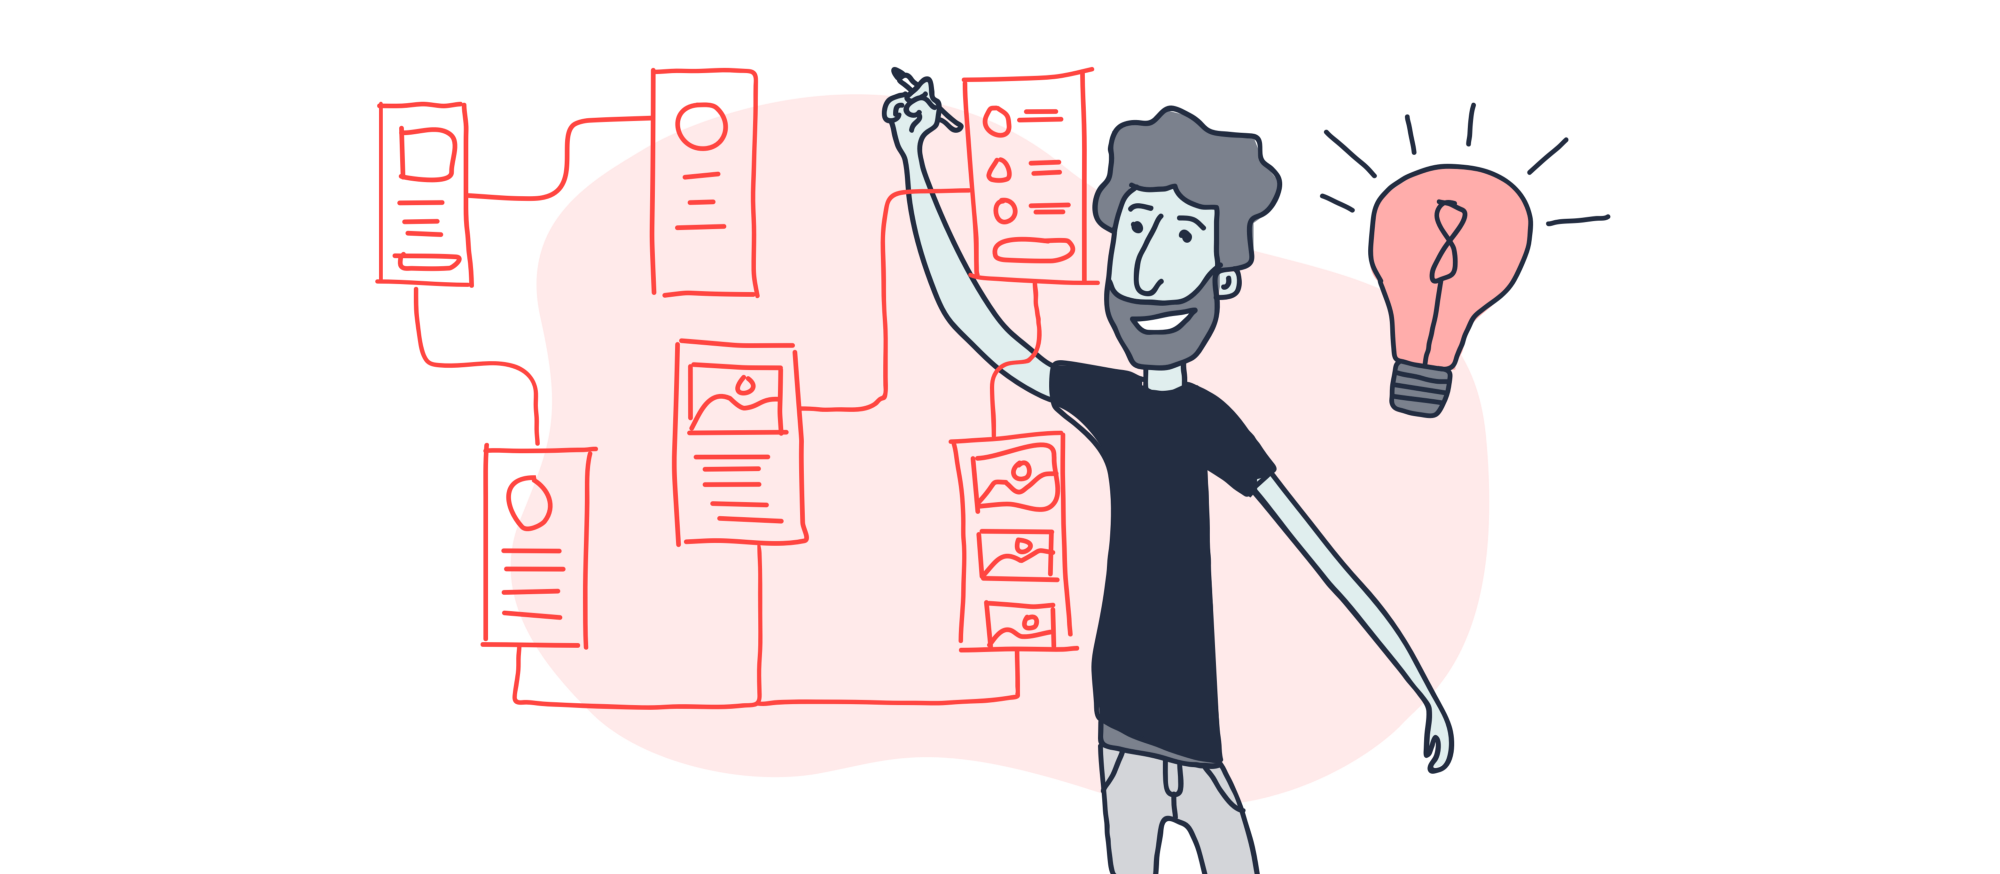 Creating a Wireframe: Points to Note